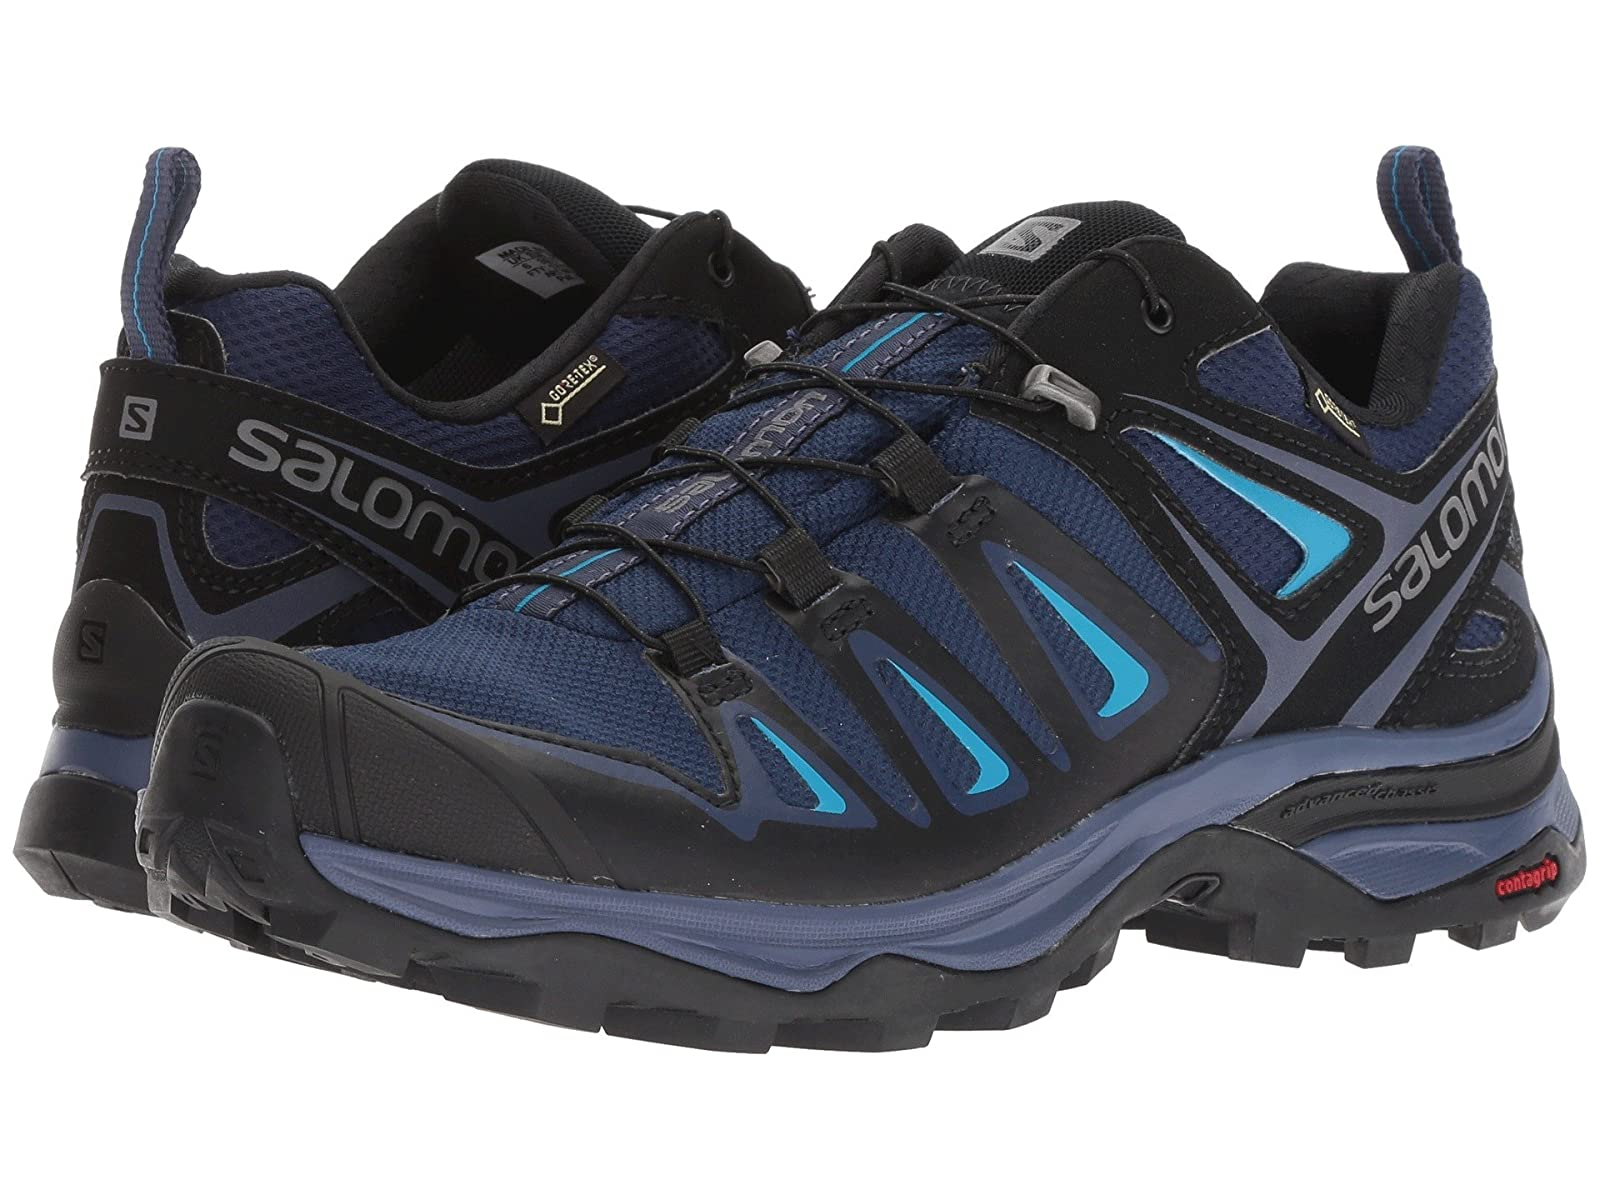 Salomon X Ultra 3 GTX®Atmospheric grades have affordable shoes